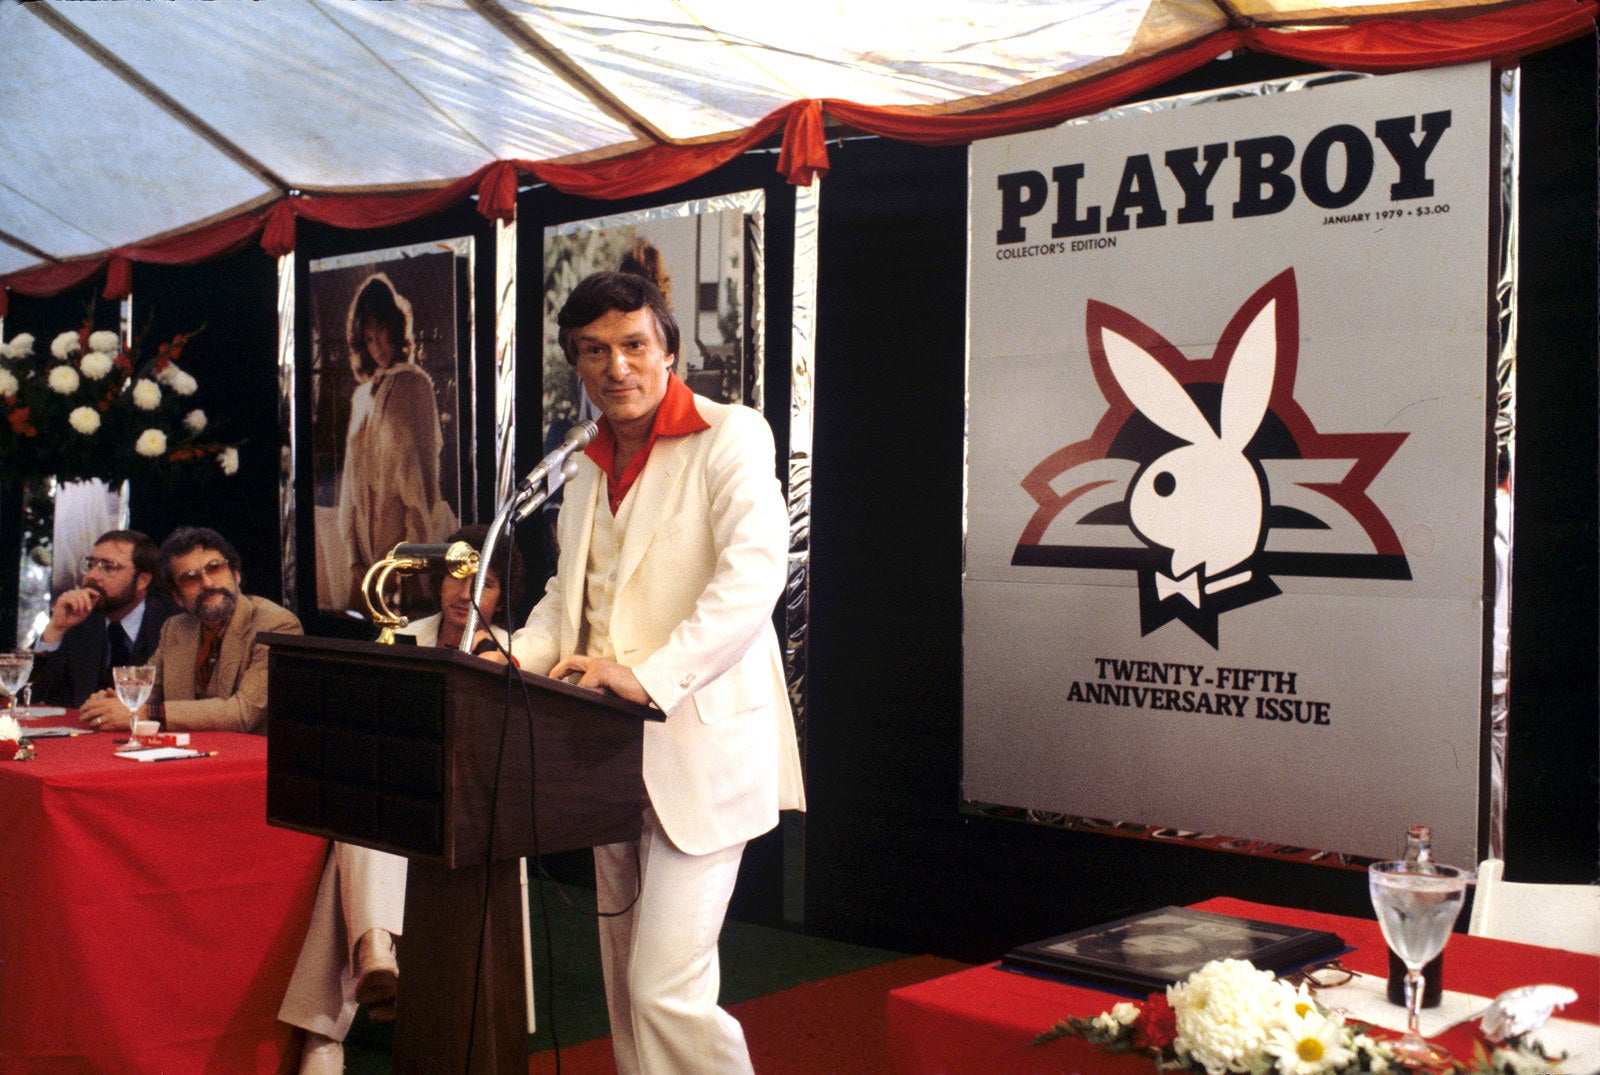 Hefner speaks to an audience during the release party for the Playboy 25th anniversary issue in 1979.